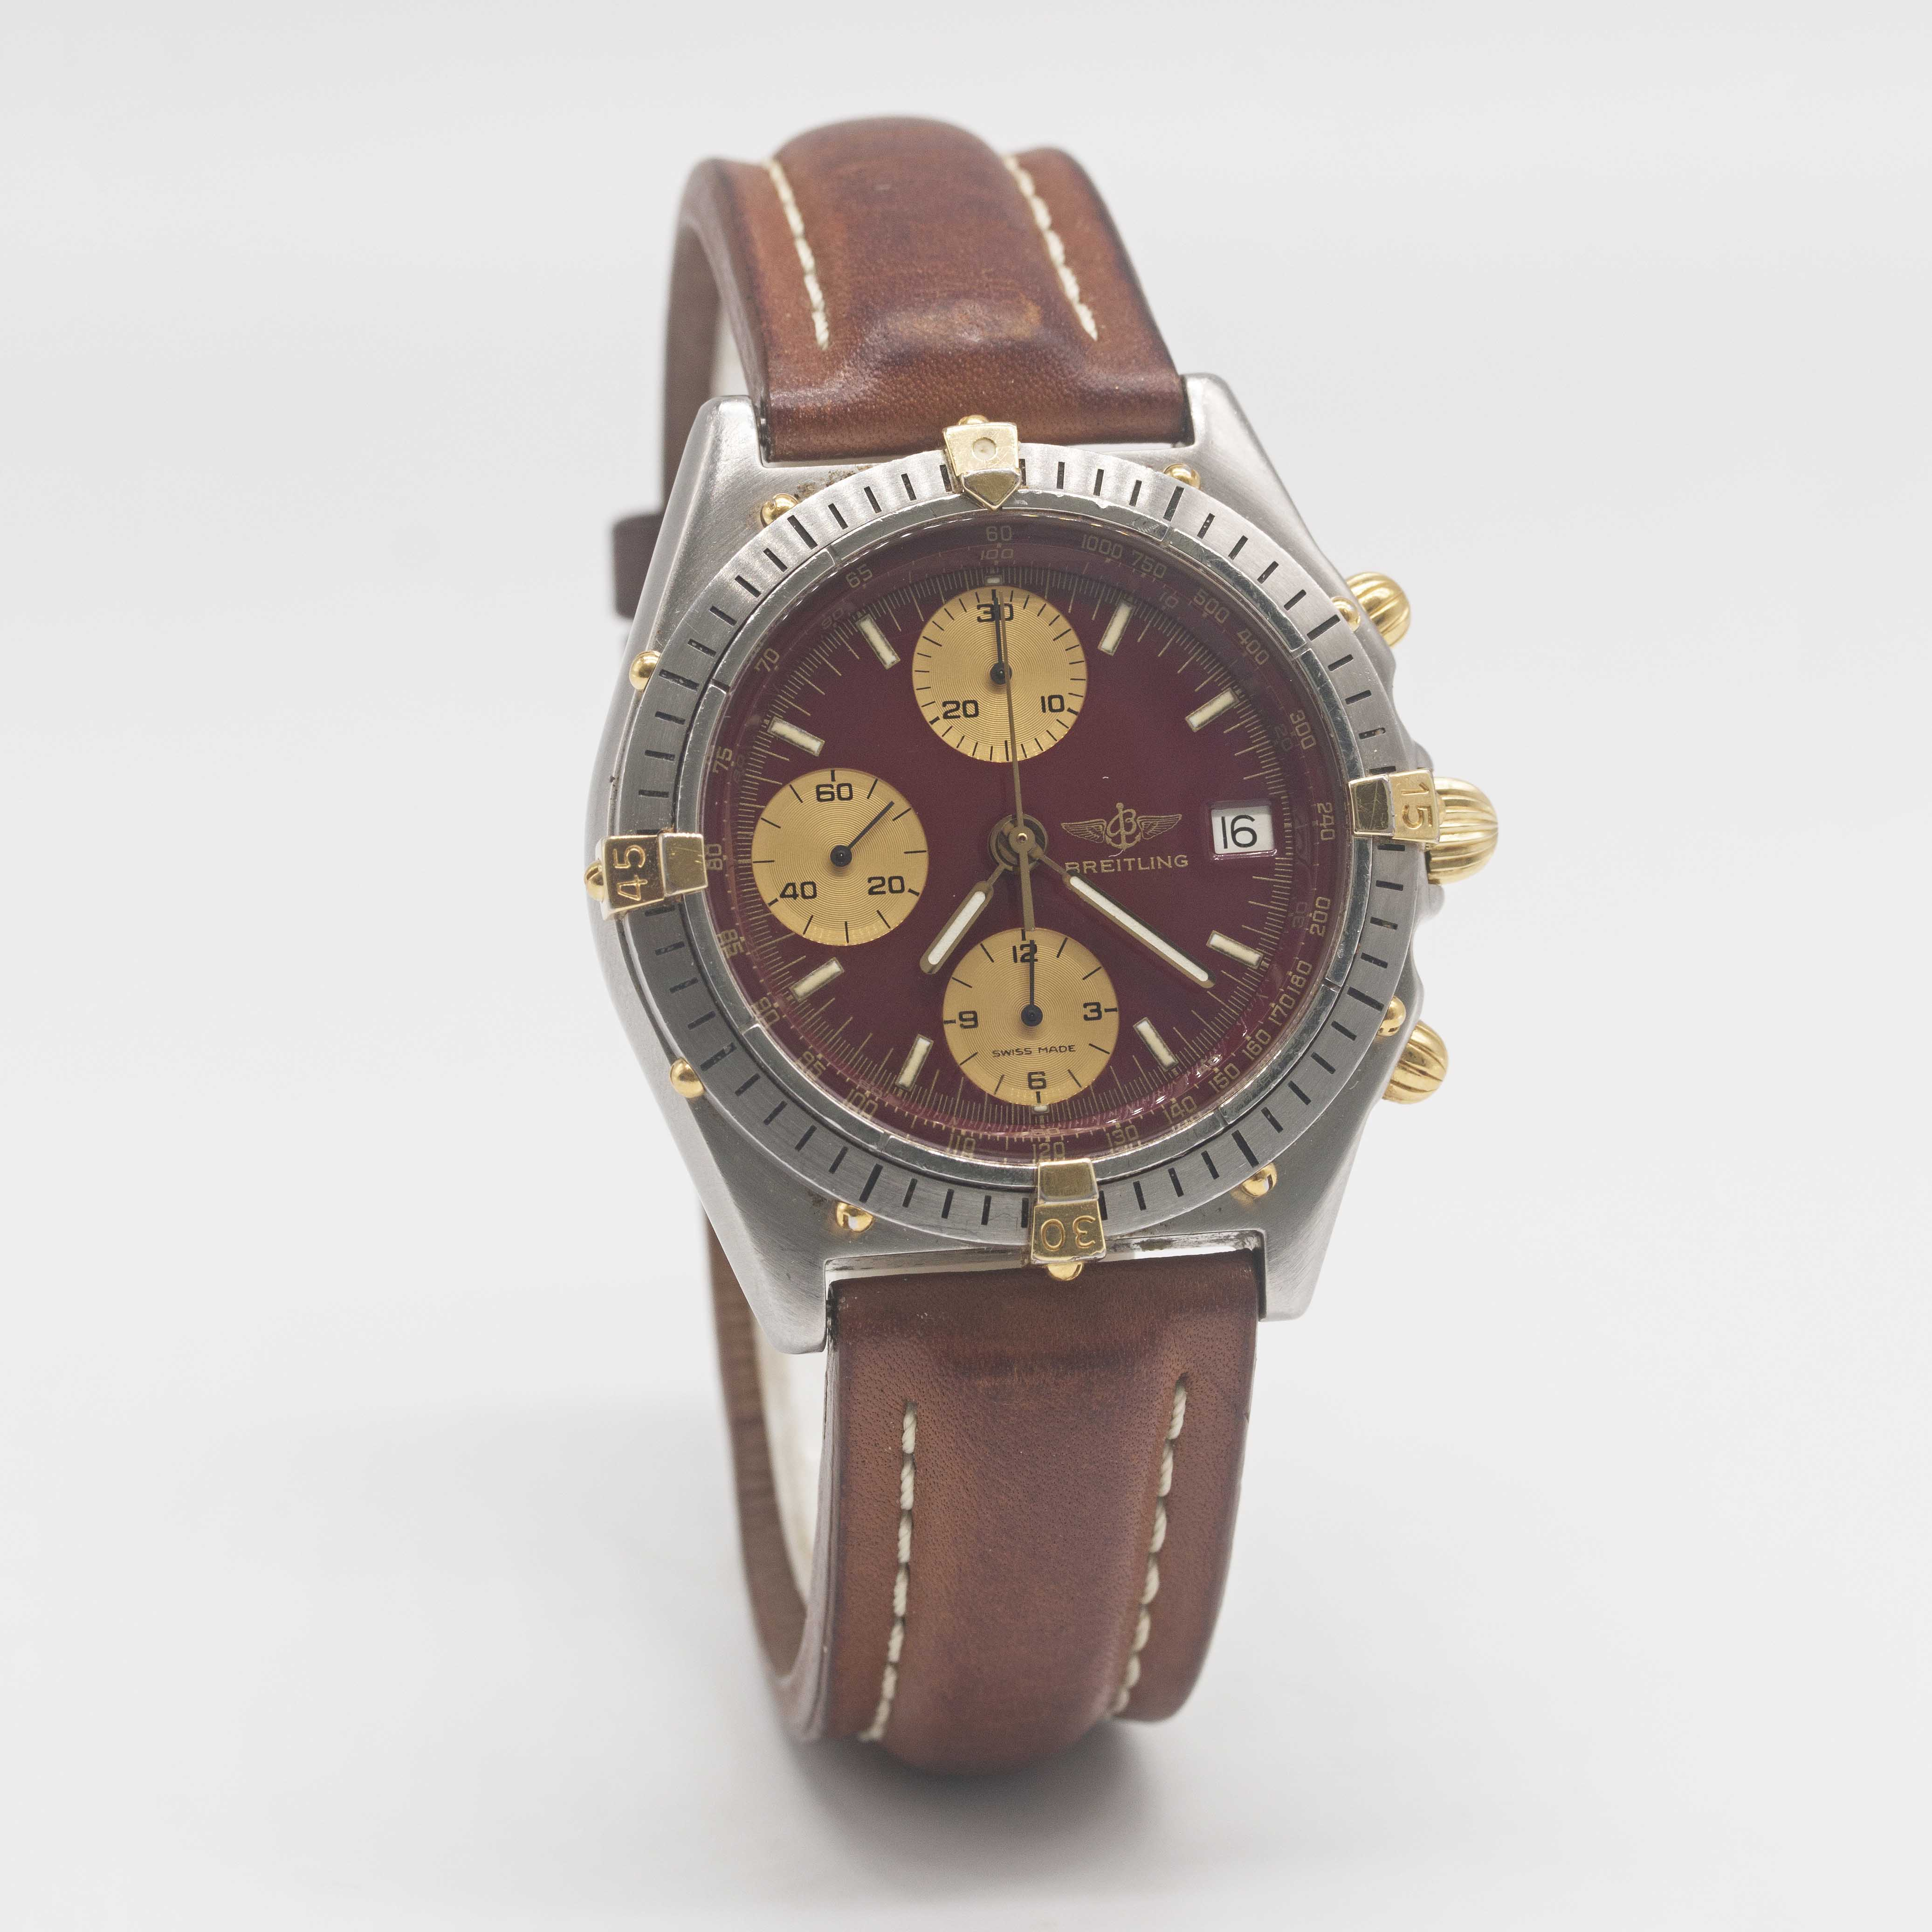 Lot 8 - A GENTLEMAN'S STEEL & GOLD BREITLING CHRONOMAT CHRONOGRAPH WRIST WATCH CIRCA 1990s, REF. 81.950 WITH